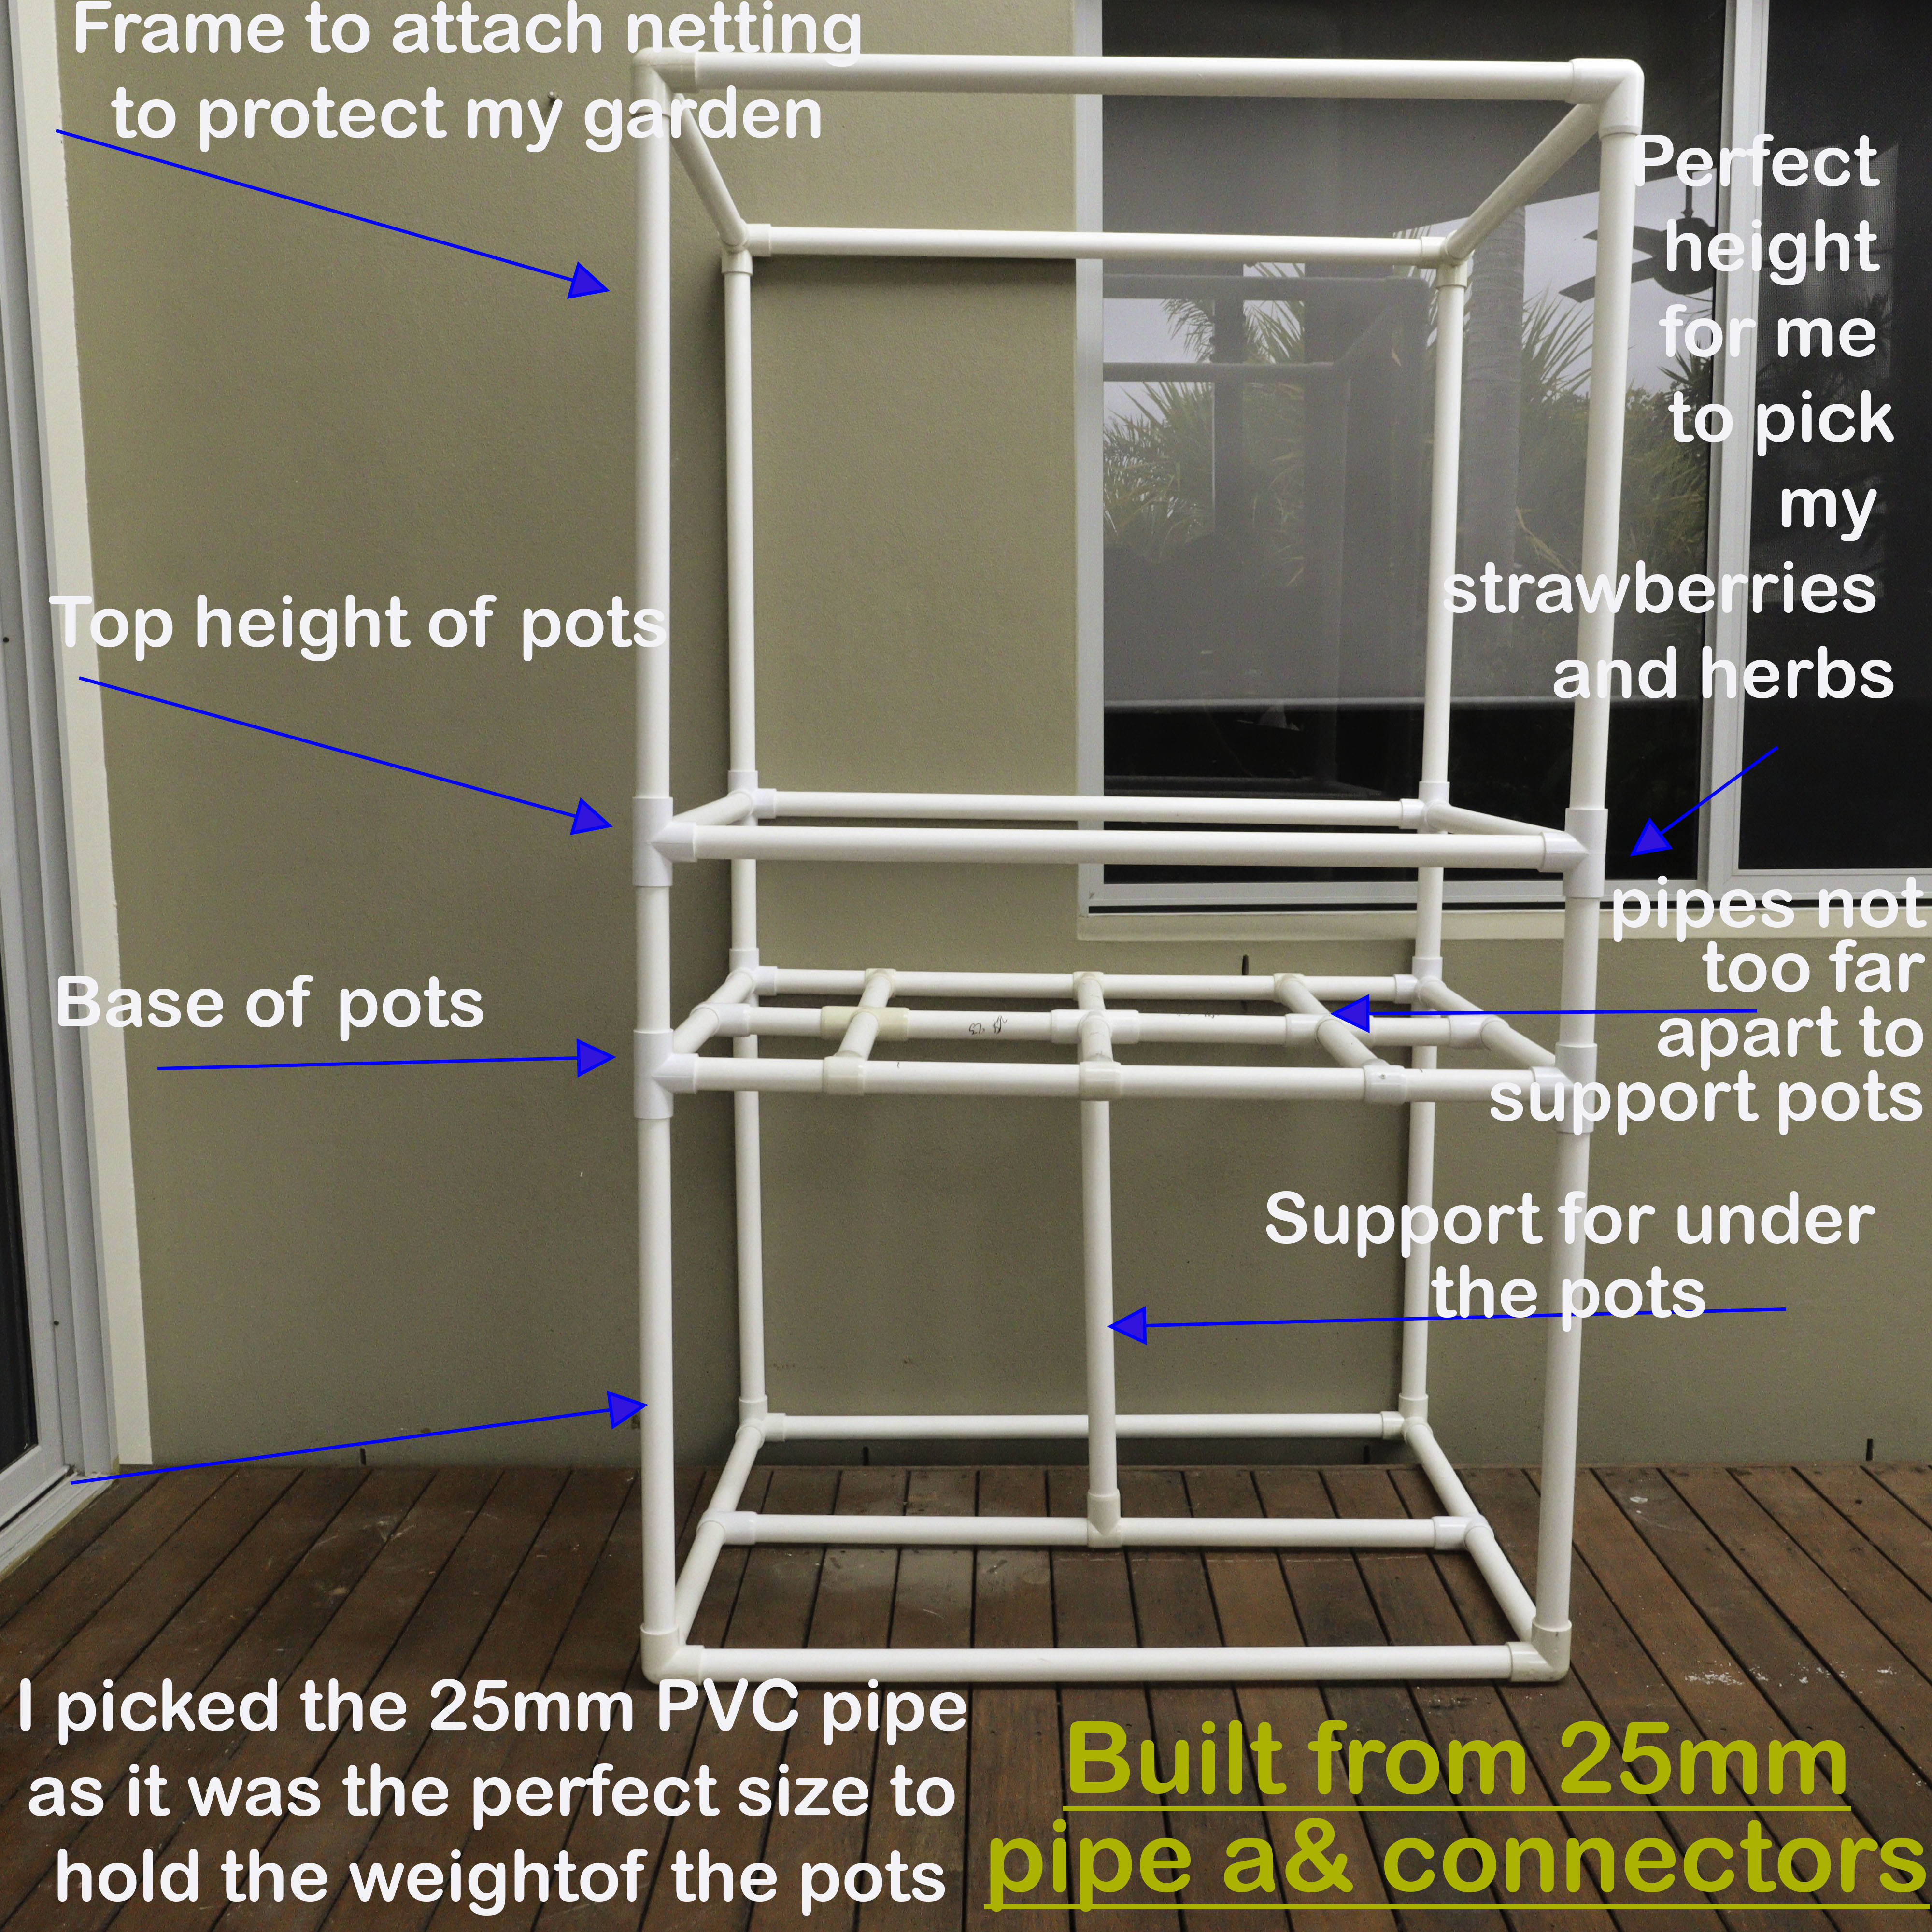 DIY raised garden bed built with PVC pipe and connectors for the frame and covered with bird exclusion netting